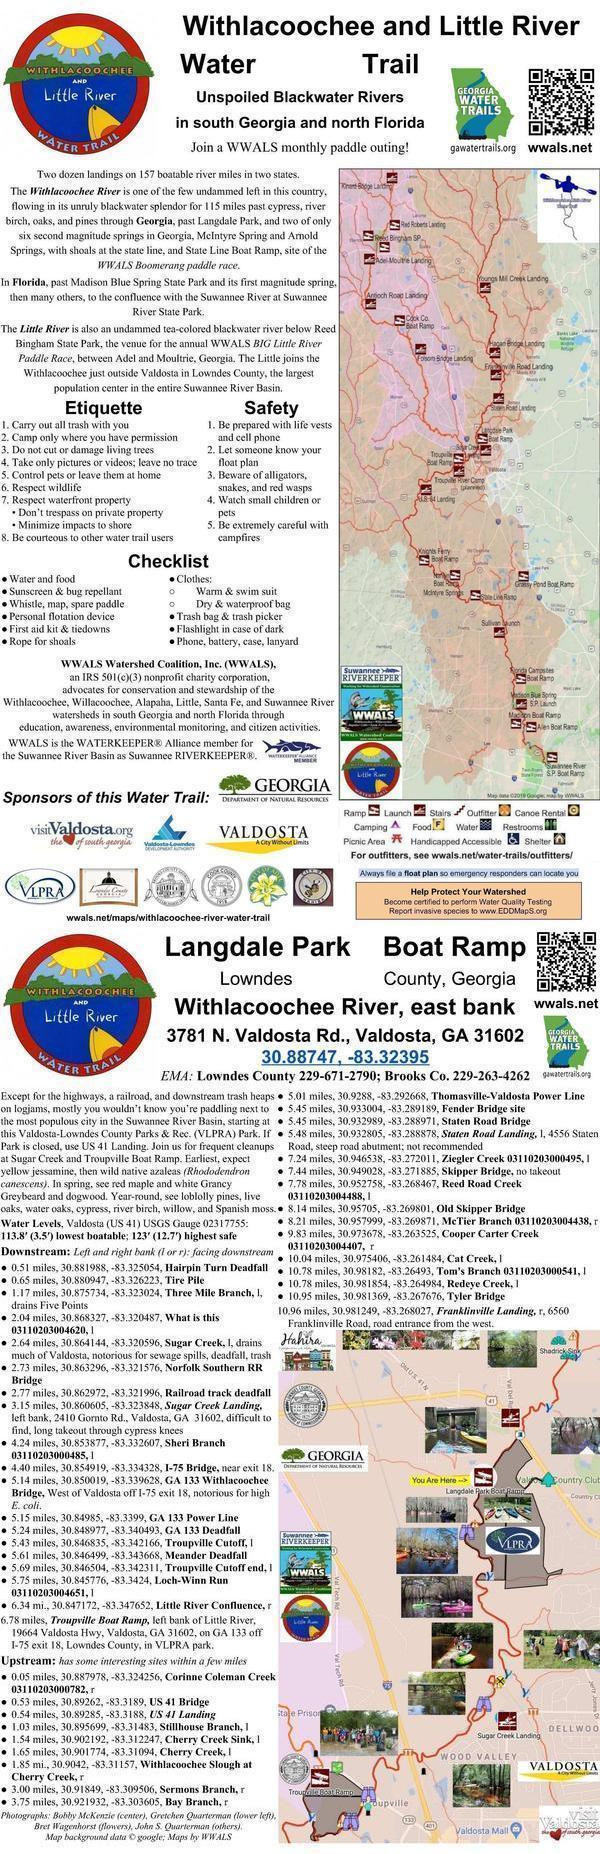 [Withlacoochee River signpost: Langdale Park Boat Ramp]